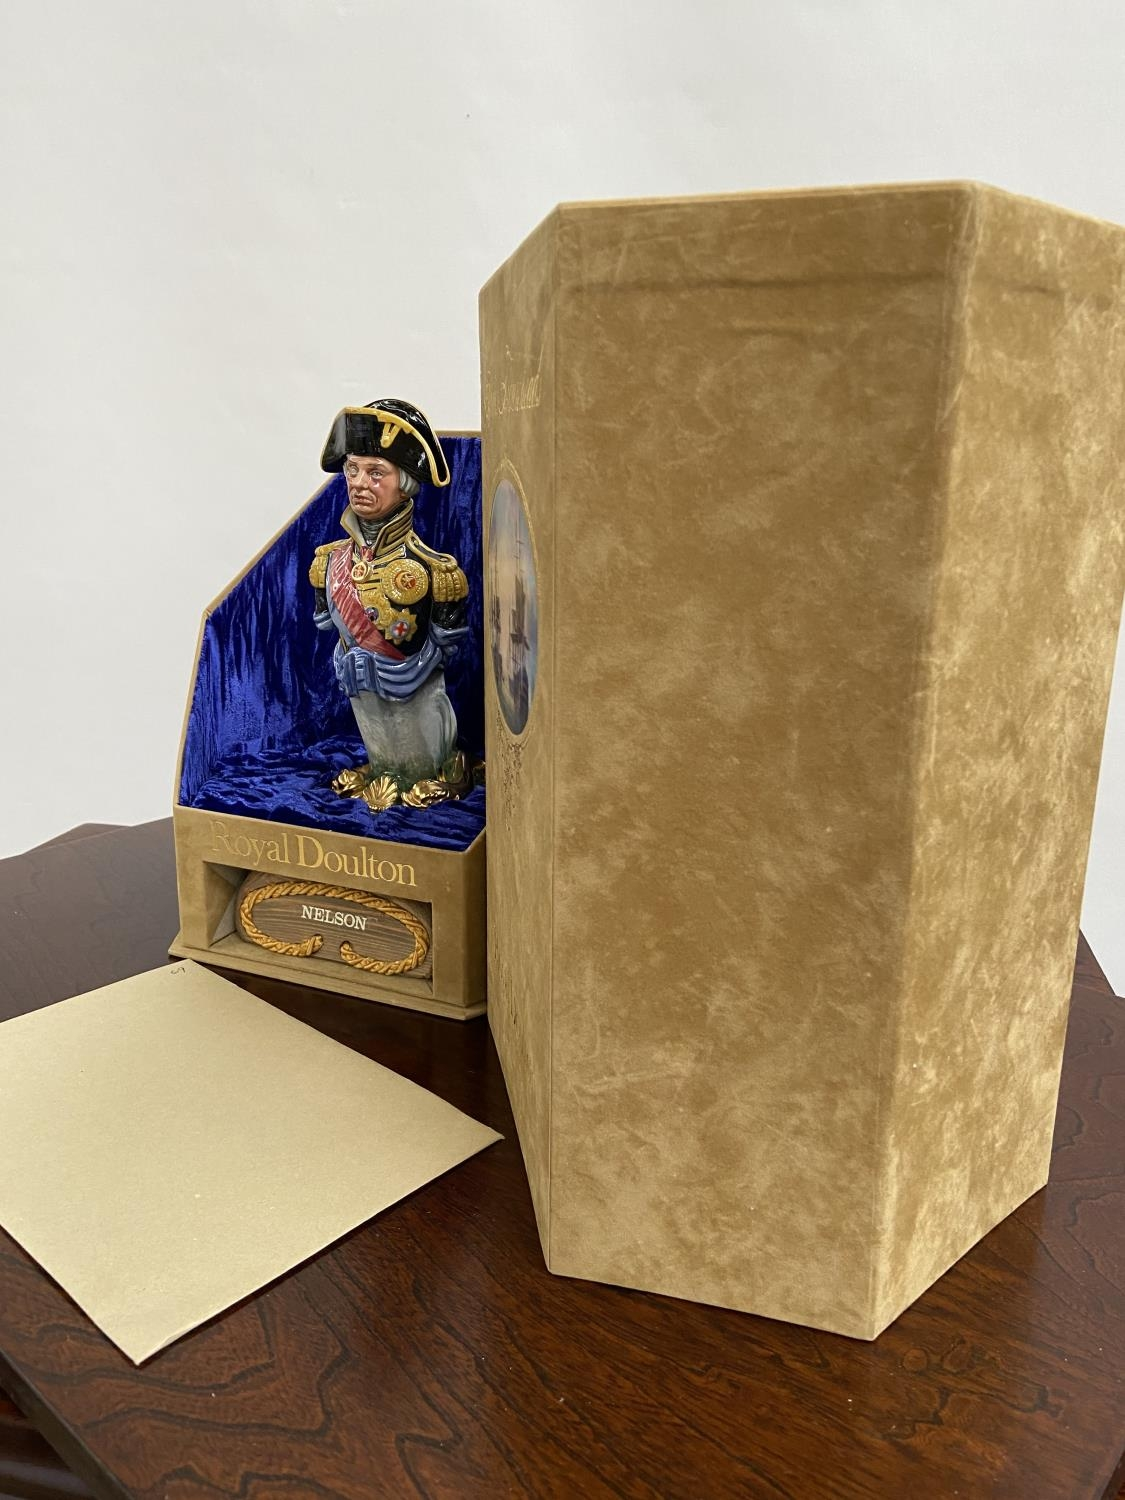 A Rare Royal Doulton Ships Figureheads bust titled 'Nelson' HN2928 [limited edition 69/950] comes - Image 5 of 6